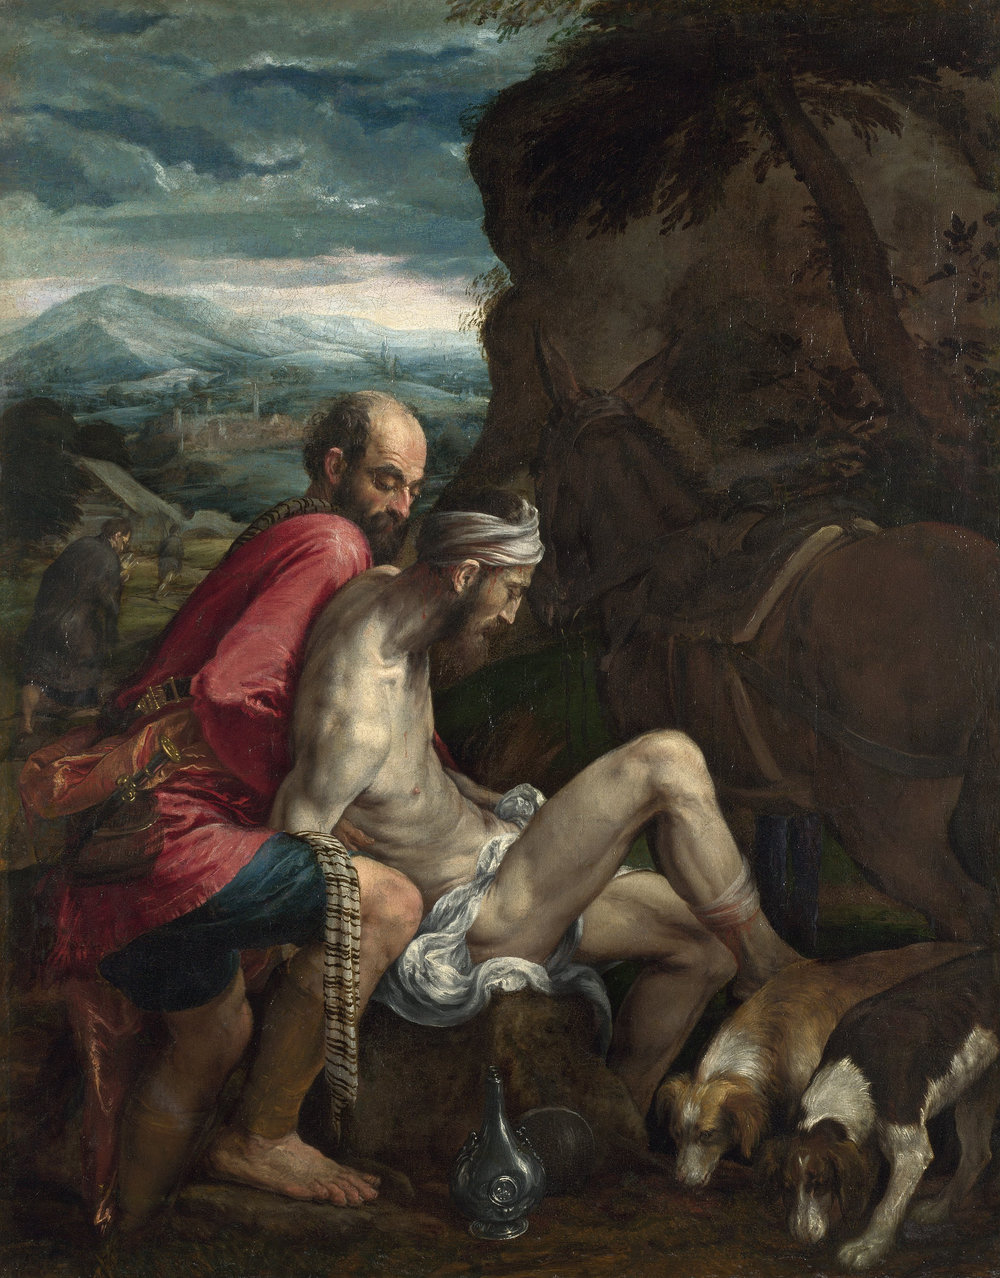 Jesus flipped the lawyer's question,  Who is my neighbor?, on its head: Who proved to be a neighbor?  (Image: The Good Samaritan by Jacopo Bassano, ca. 1562, The National Gallery, London; Image downloaded from Google Cultural Institute via WikiMedia Commons)